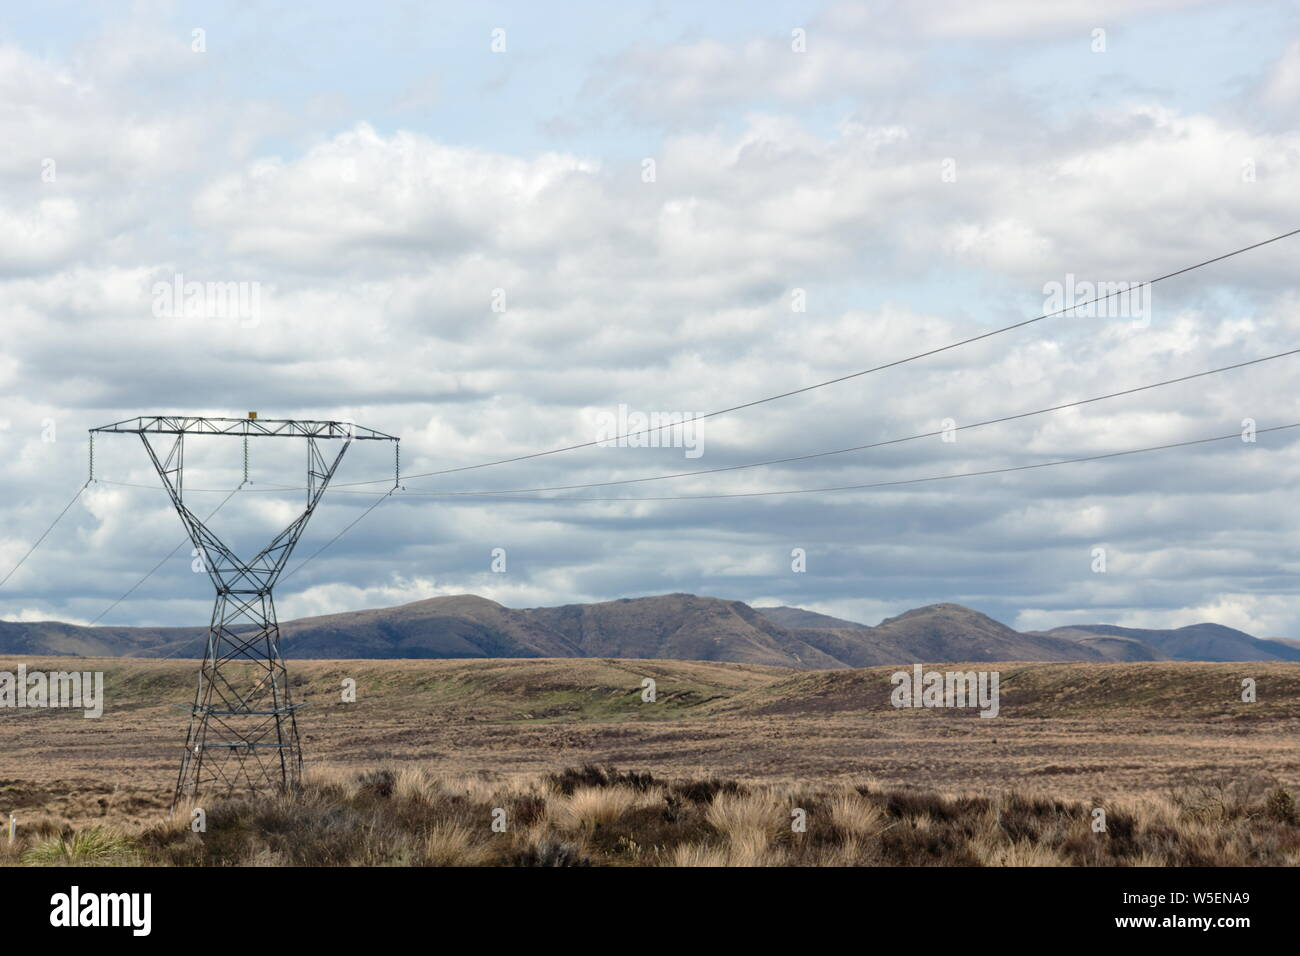 A Pylon stands tall in the Rangipo Desert, a barren desert-like environment in New Zealand, located in the Ruapehu District on the North Island Volcan Stock Photo